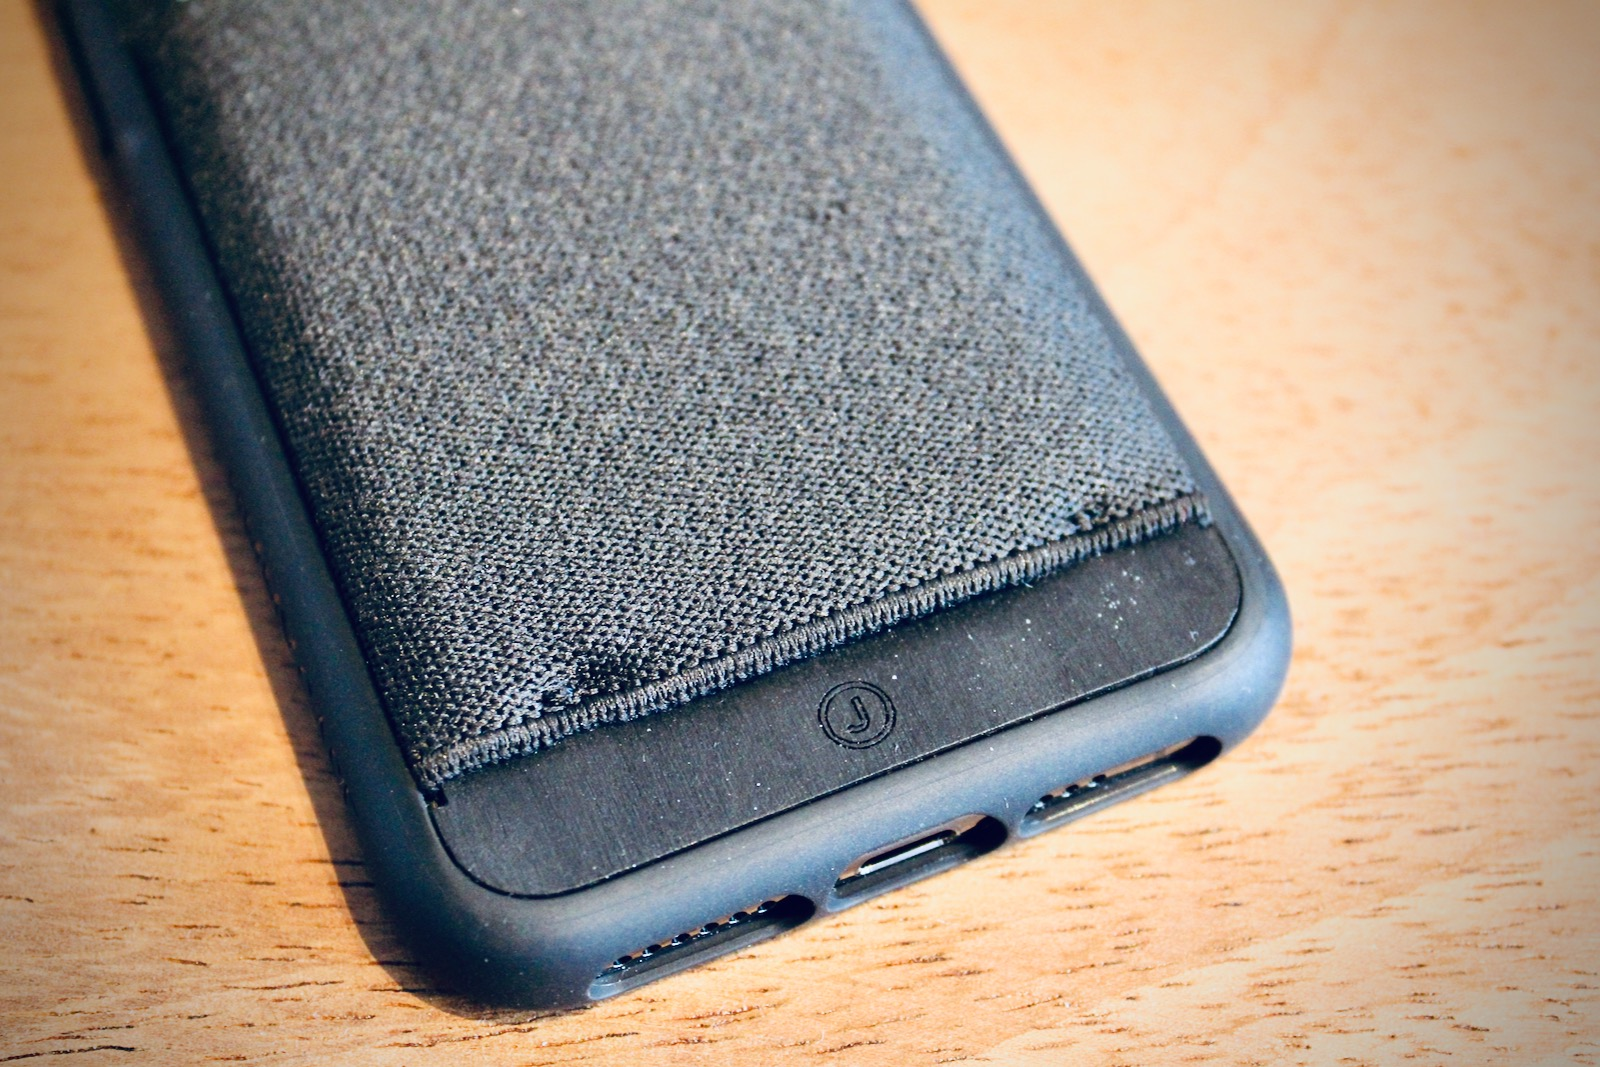 Jimmycase iPhone11 Pro Wallet Phone Case Review